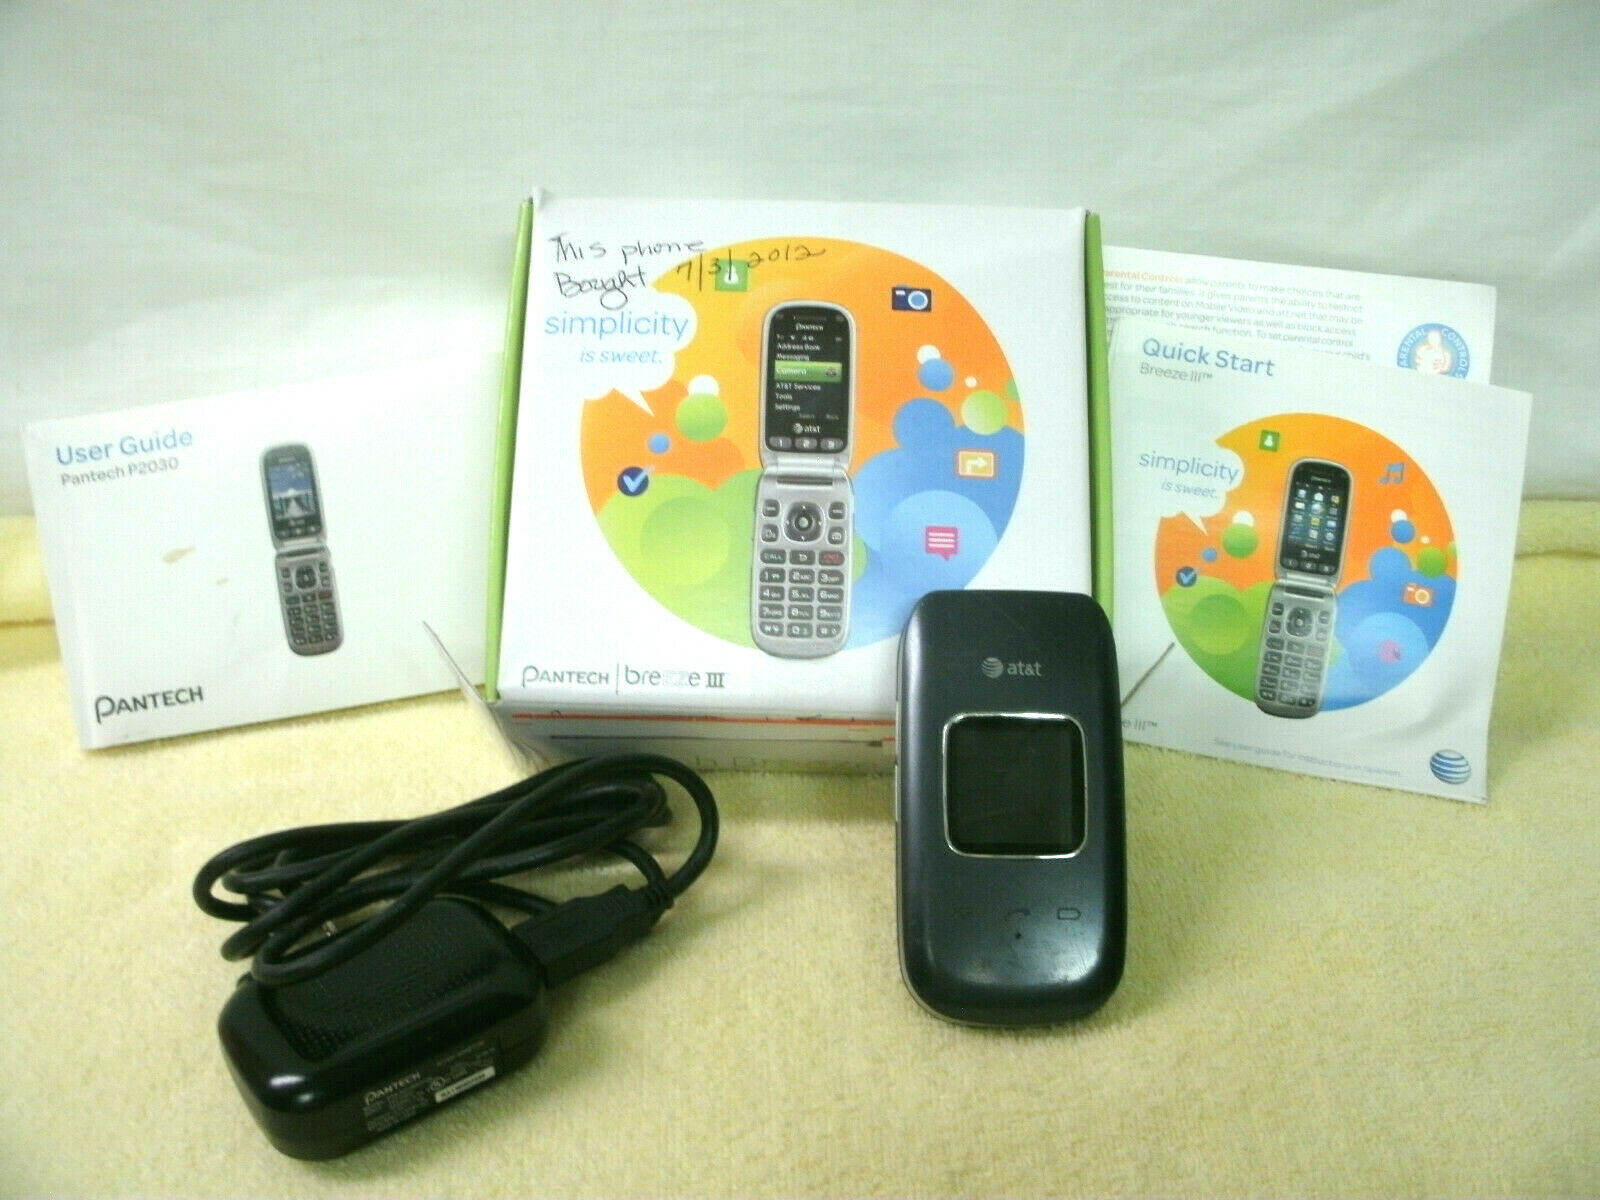 Pantech Breeze Iii Cell Phone Charger Replacement For Sale Online Ebay